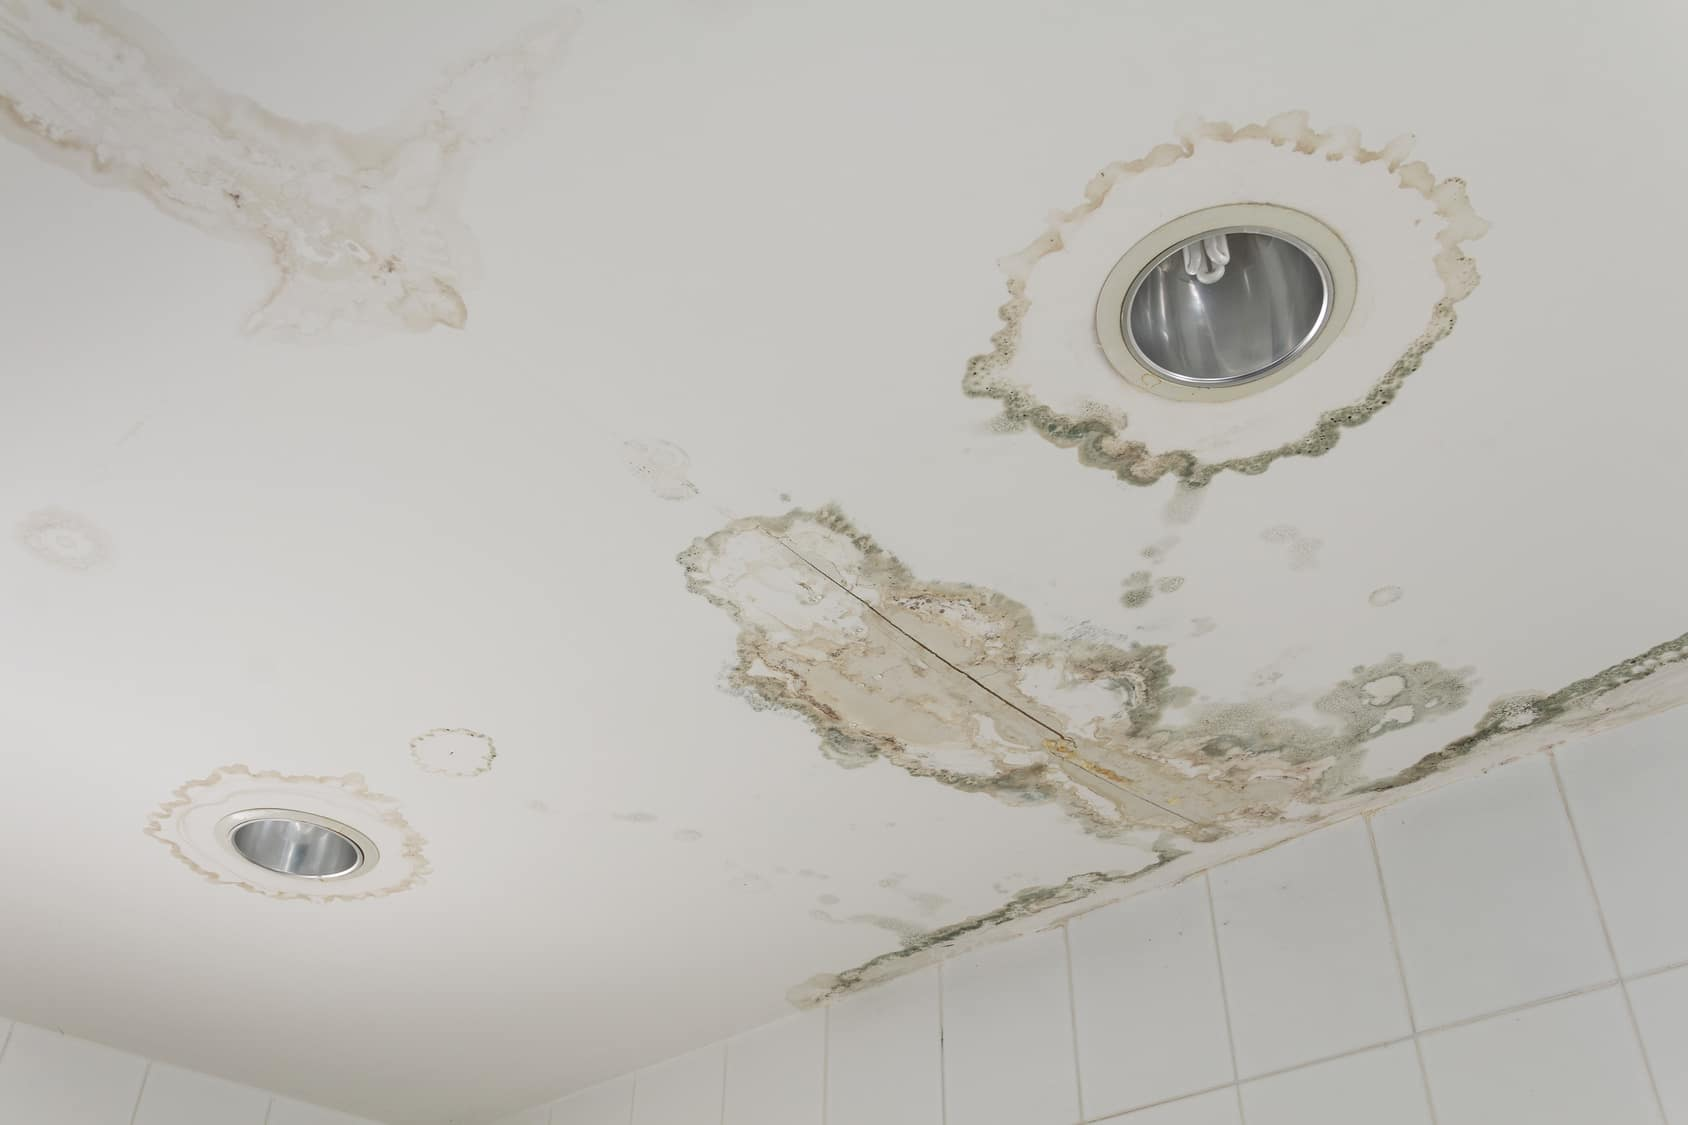 Should I be concerned about mold